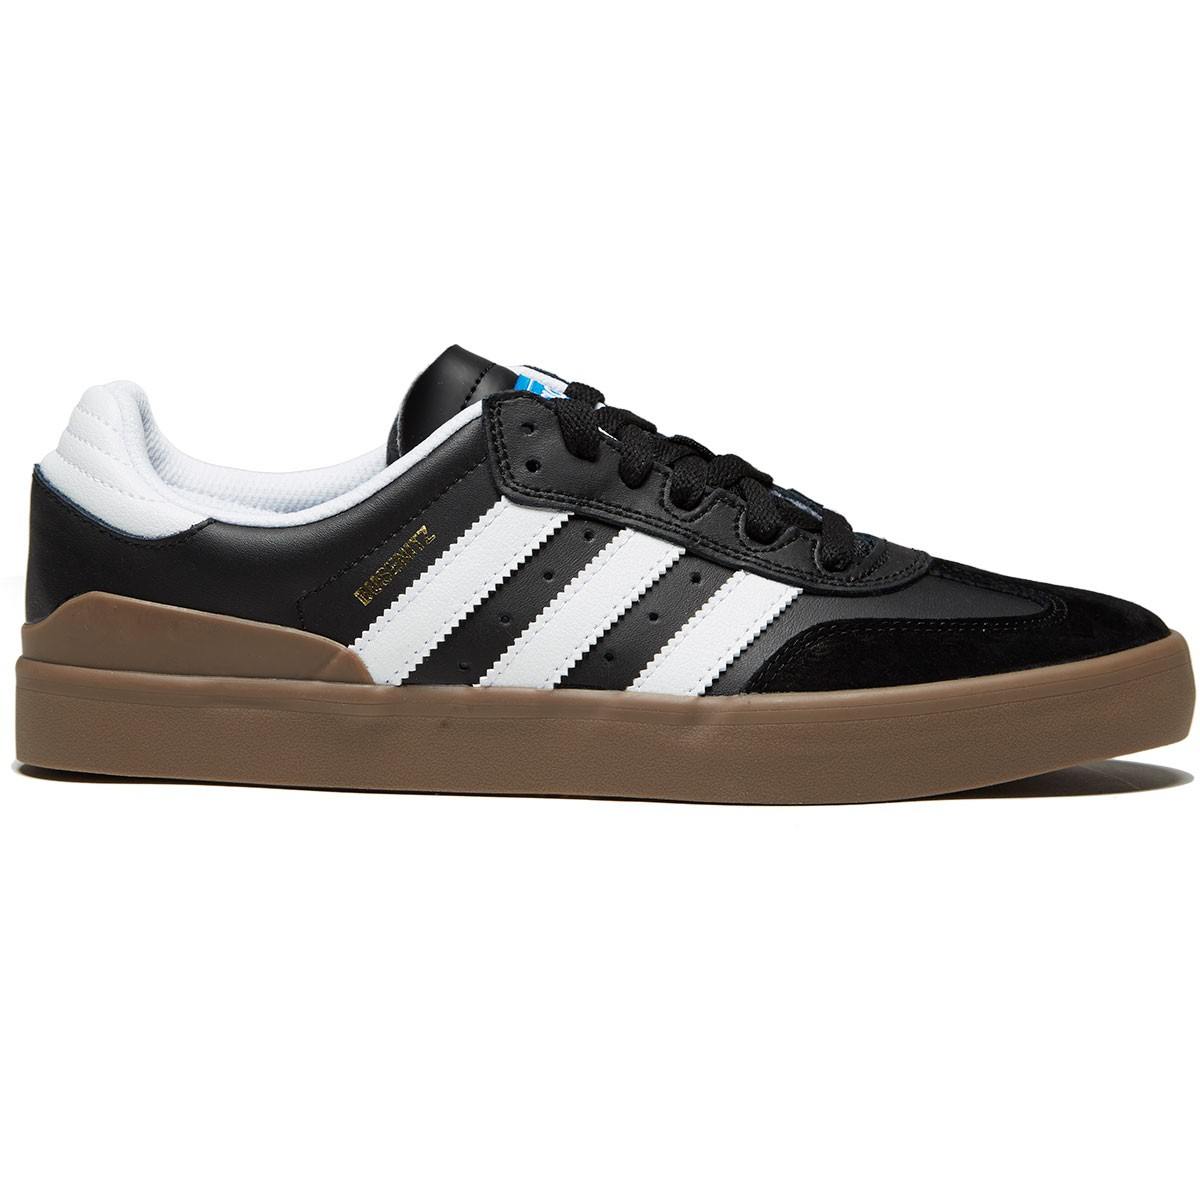 new concept a69d8 42ff1 Adidas Busenitz Vulc Rx Shoes - Core Black White Gum